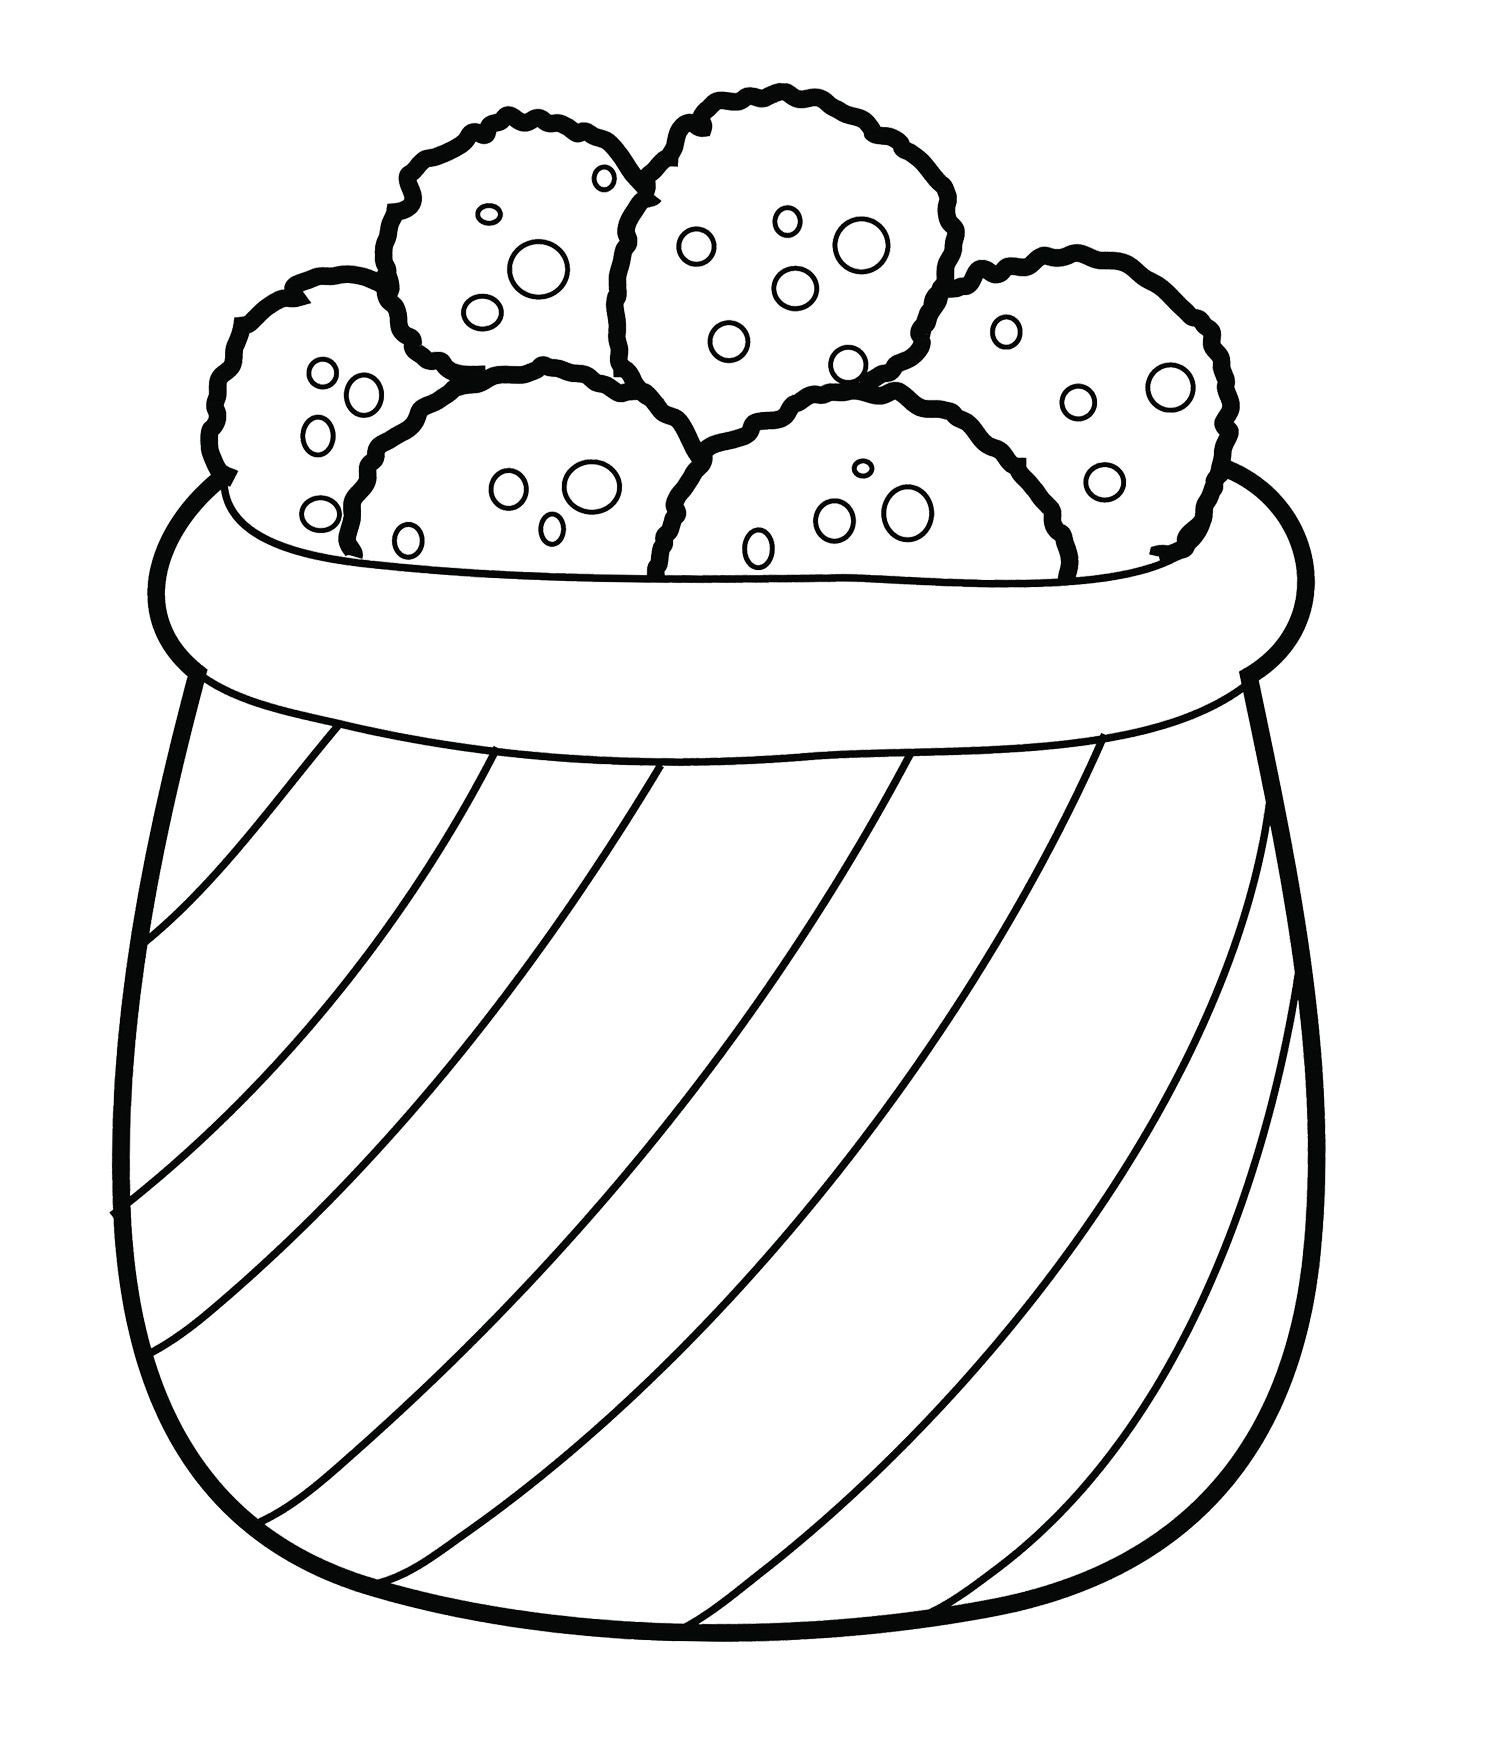 Cookies In The Basket Coloring Page